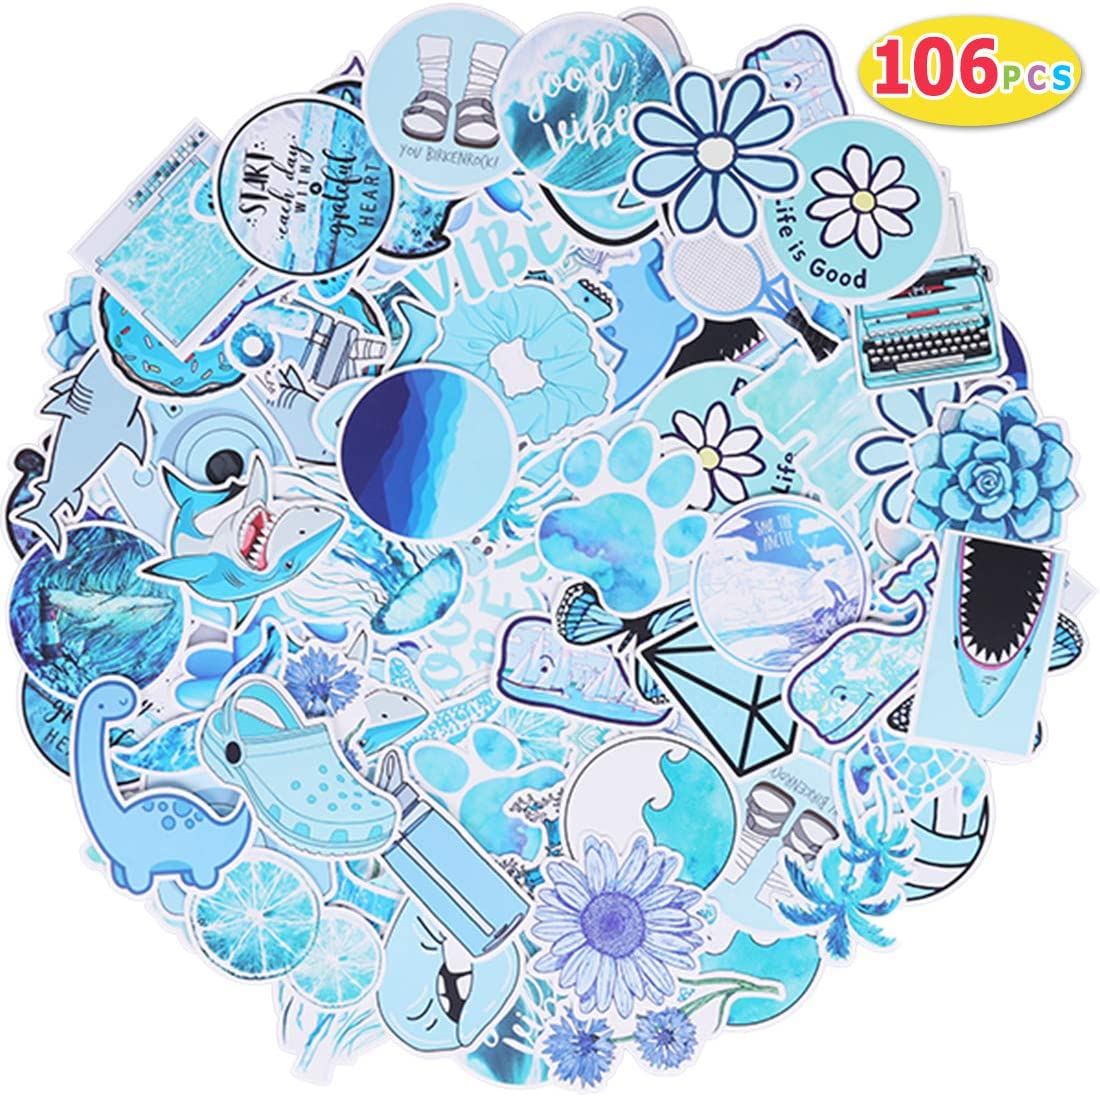 Pink Max Fun 103pcs Waterproof Stickers Packs for Water Bottle Laptop Envelopes Gifts Tags Crafts Windows Phone Luggage Snowboard Guitar Skateboard Stickers Decals